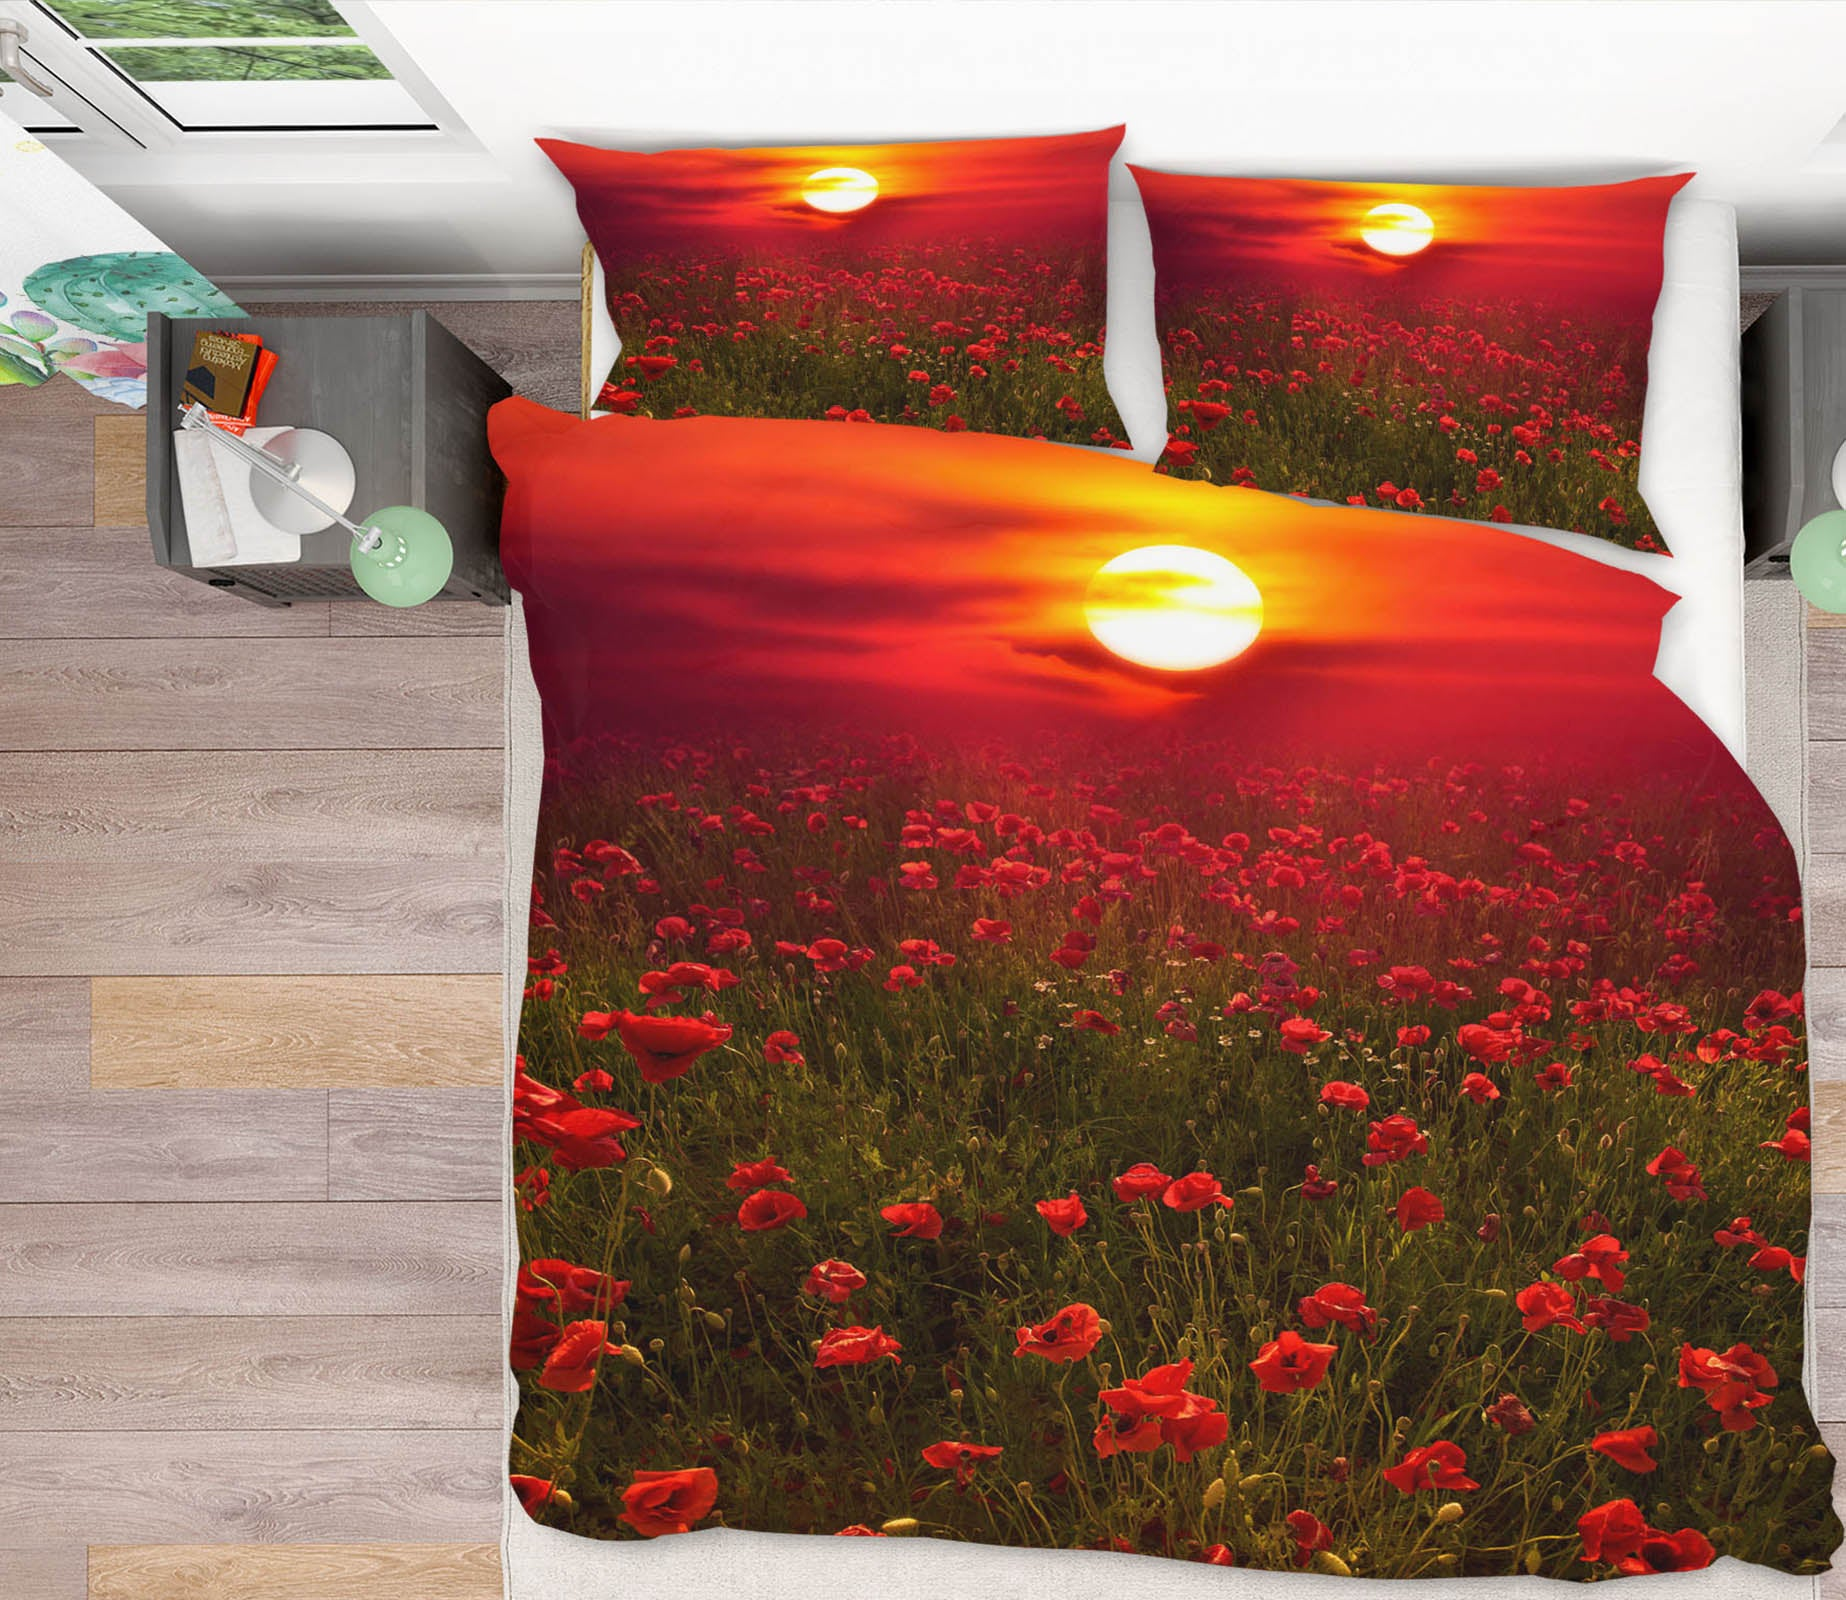 3D Warm Sunset 166 Marco Carmassi Bedding Bed Pillowcases Quilt